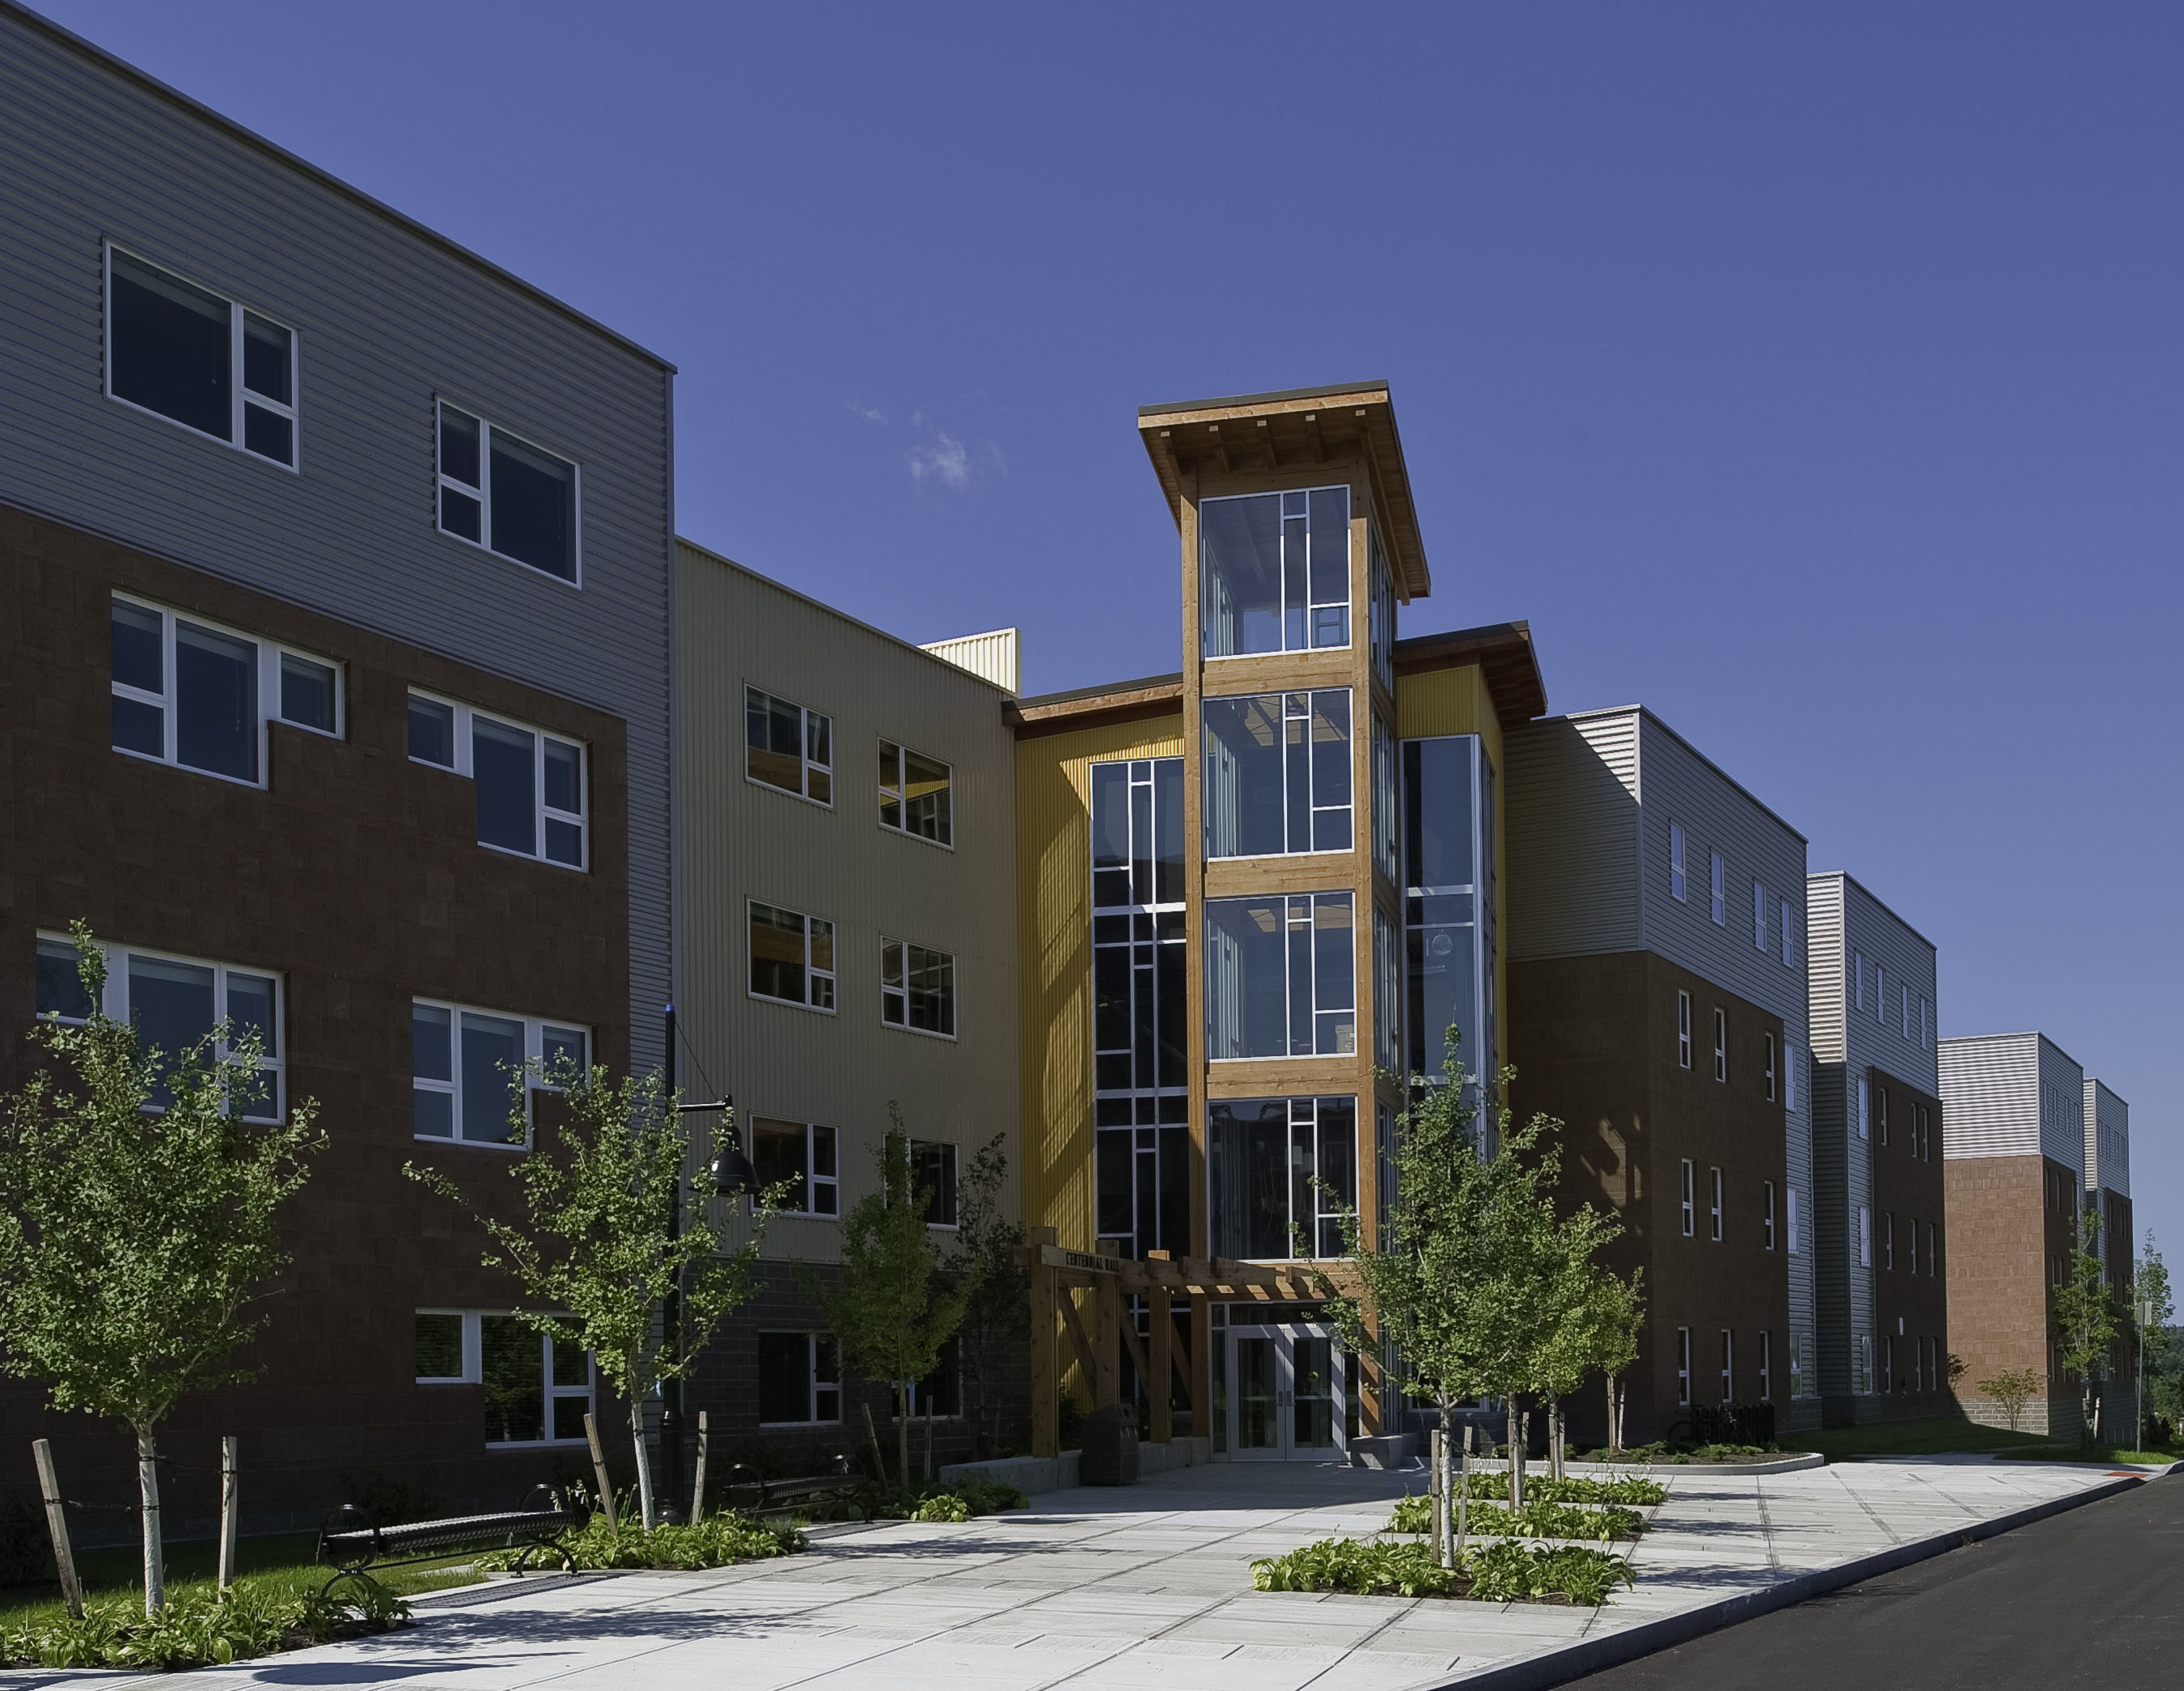 Suny Esf Campus Map.Suny Esf S Centennial Hall Ranked As One Of Nation S Top Dorms By